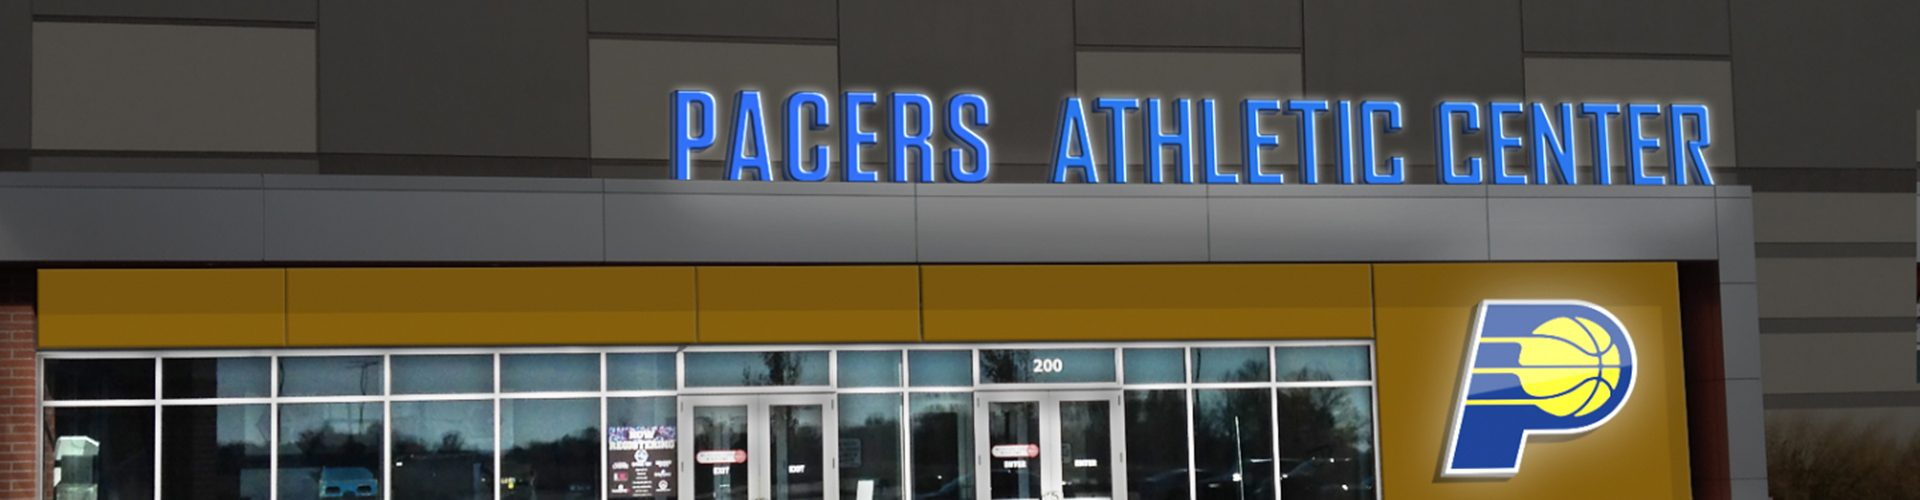 Indianapolis Youth Basketball Leagues | The Pacers Athletic